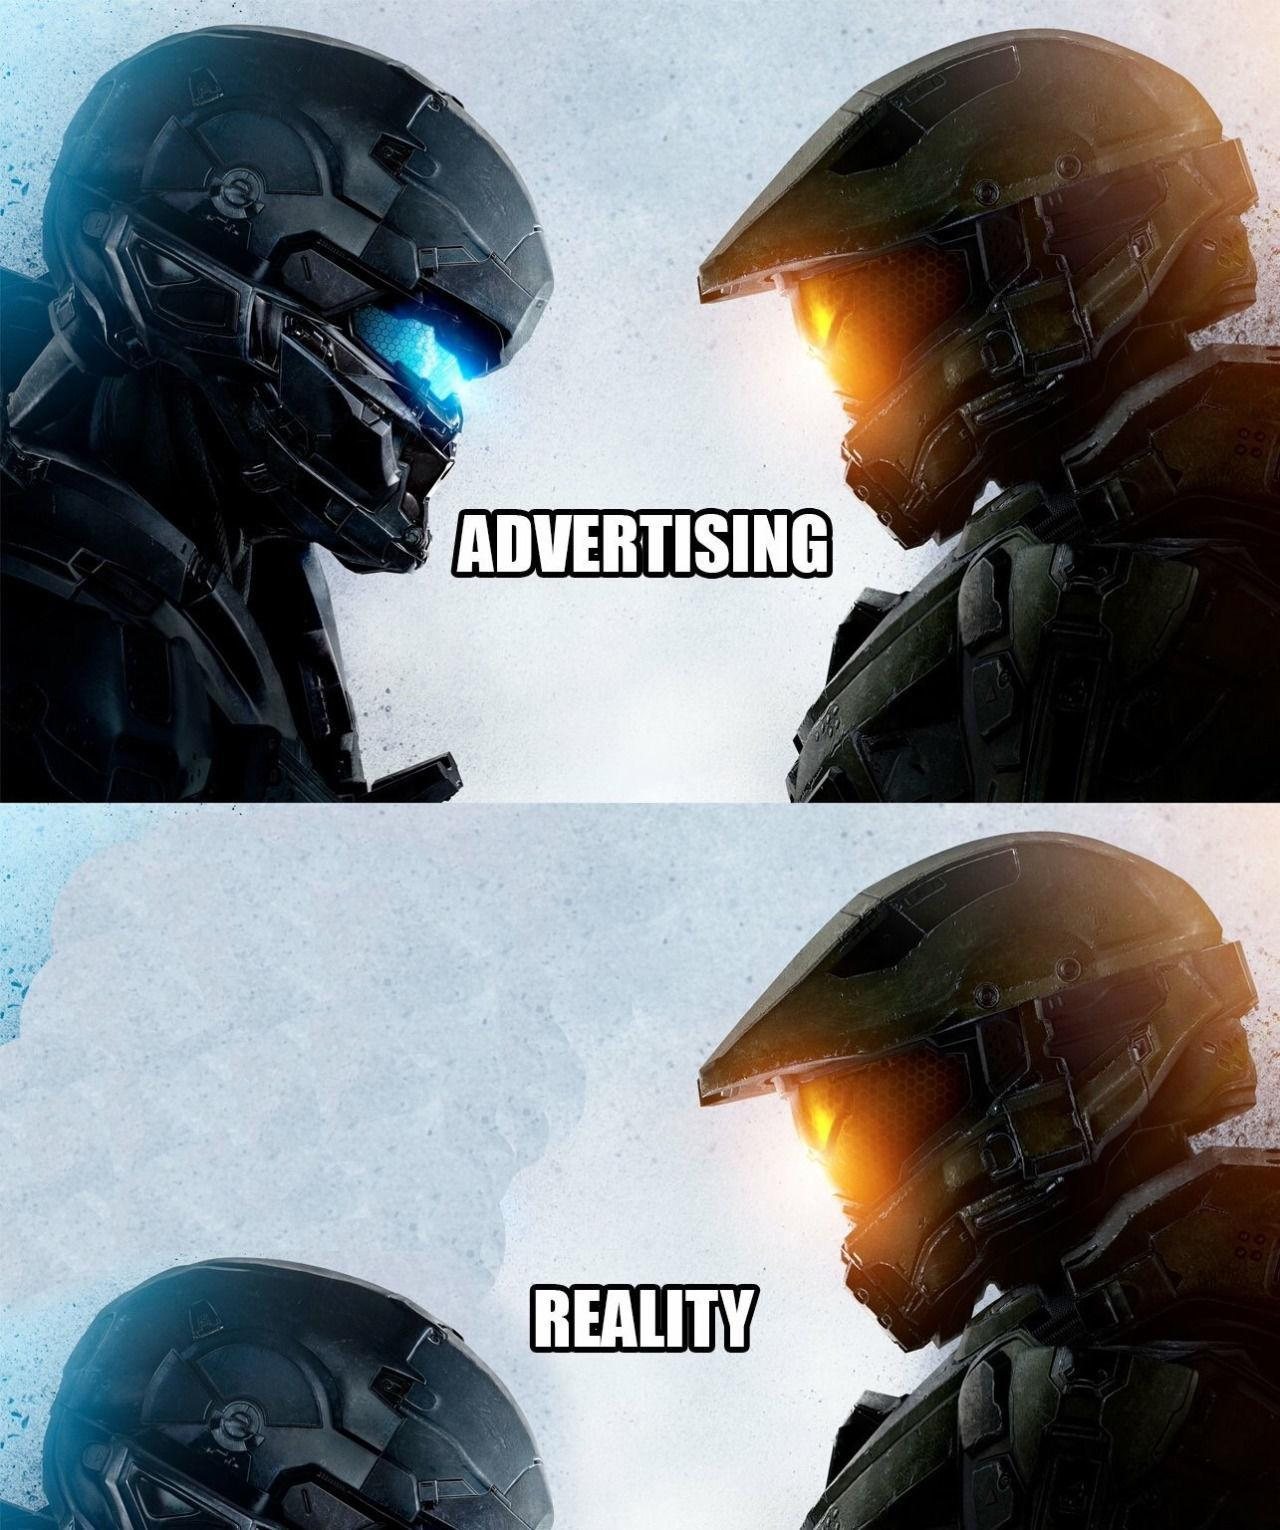 Image - Isn't he shorter? Just think about it. #halo #reach #newhalo #microsoft - Post 485